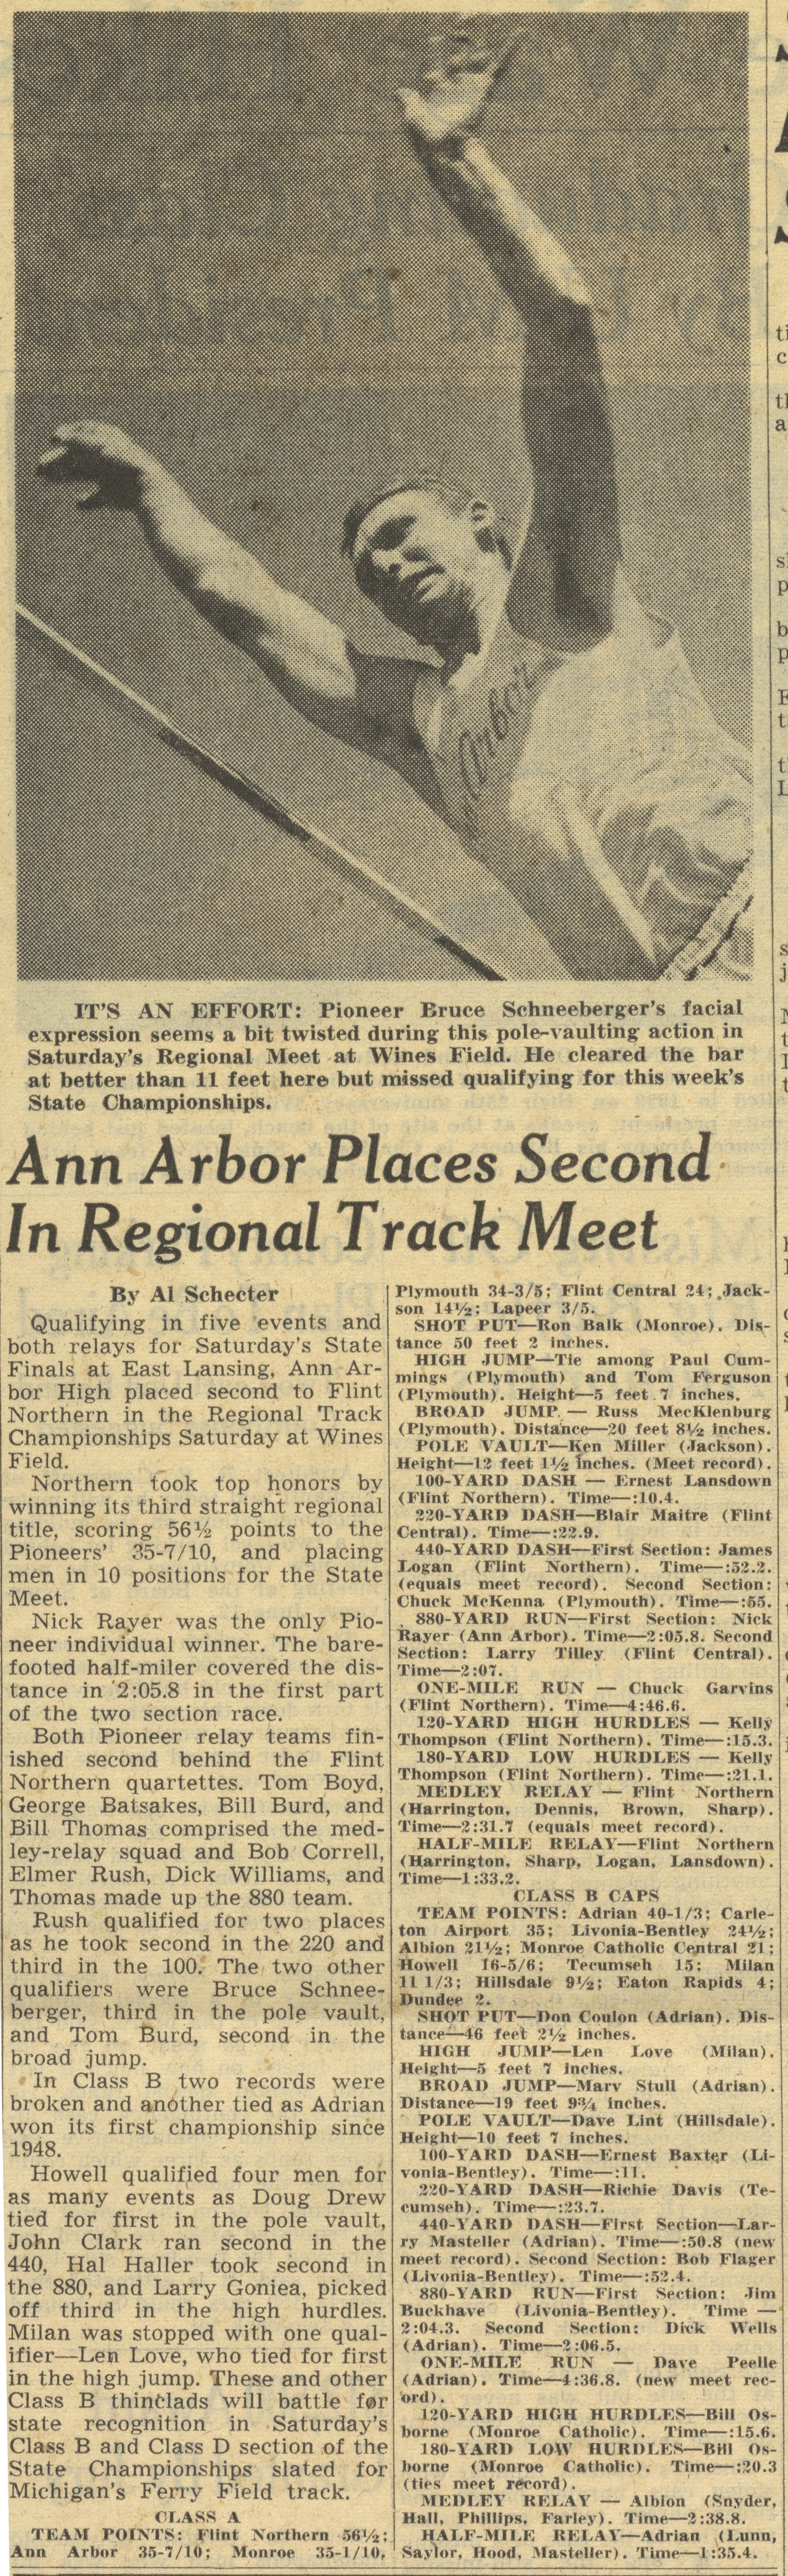 Ann Arbor Places Second In Regional Track Meet image